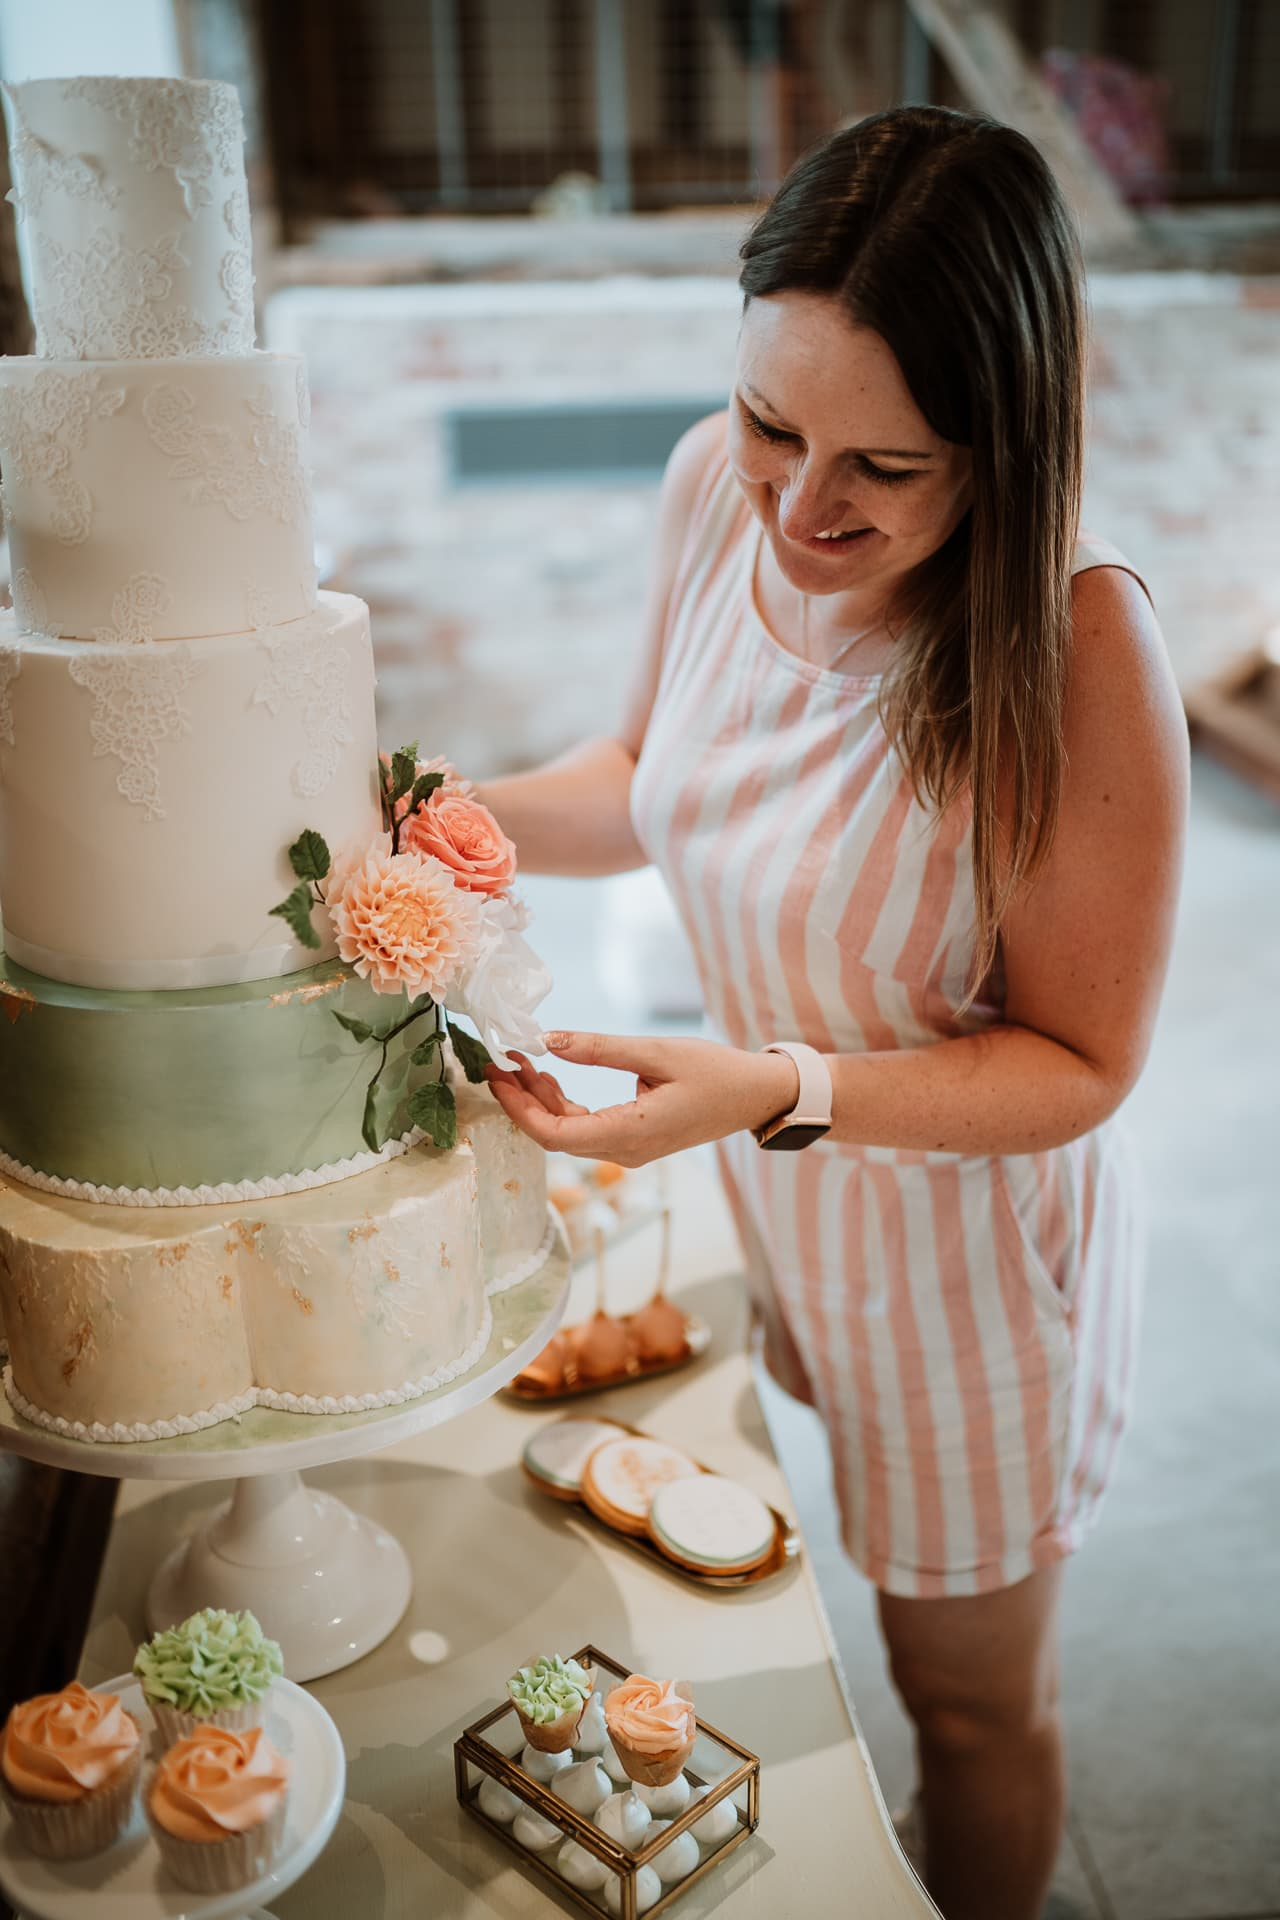 Chelsea from Chelsea Buns Cake design positioning a 5 tier wedding cake for branding portrait